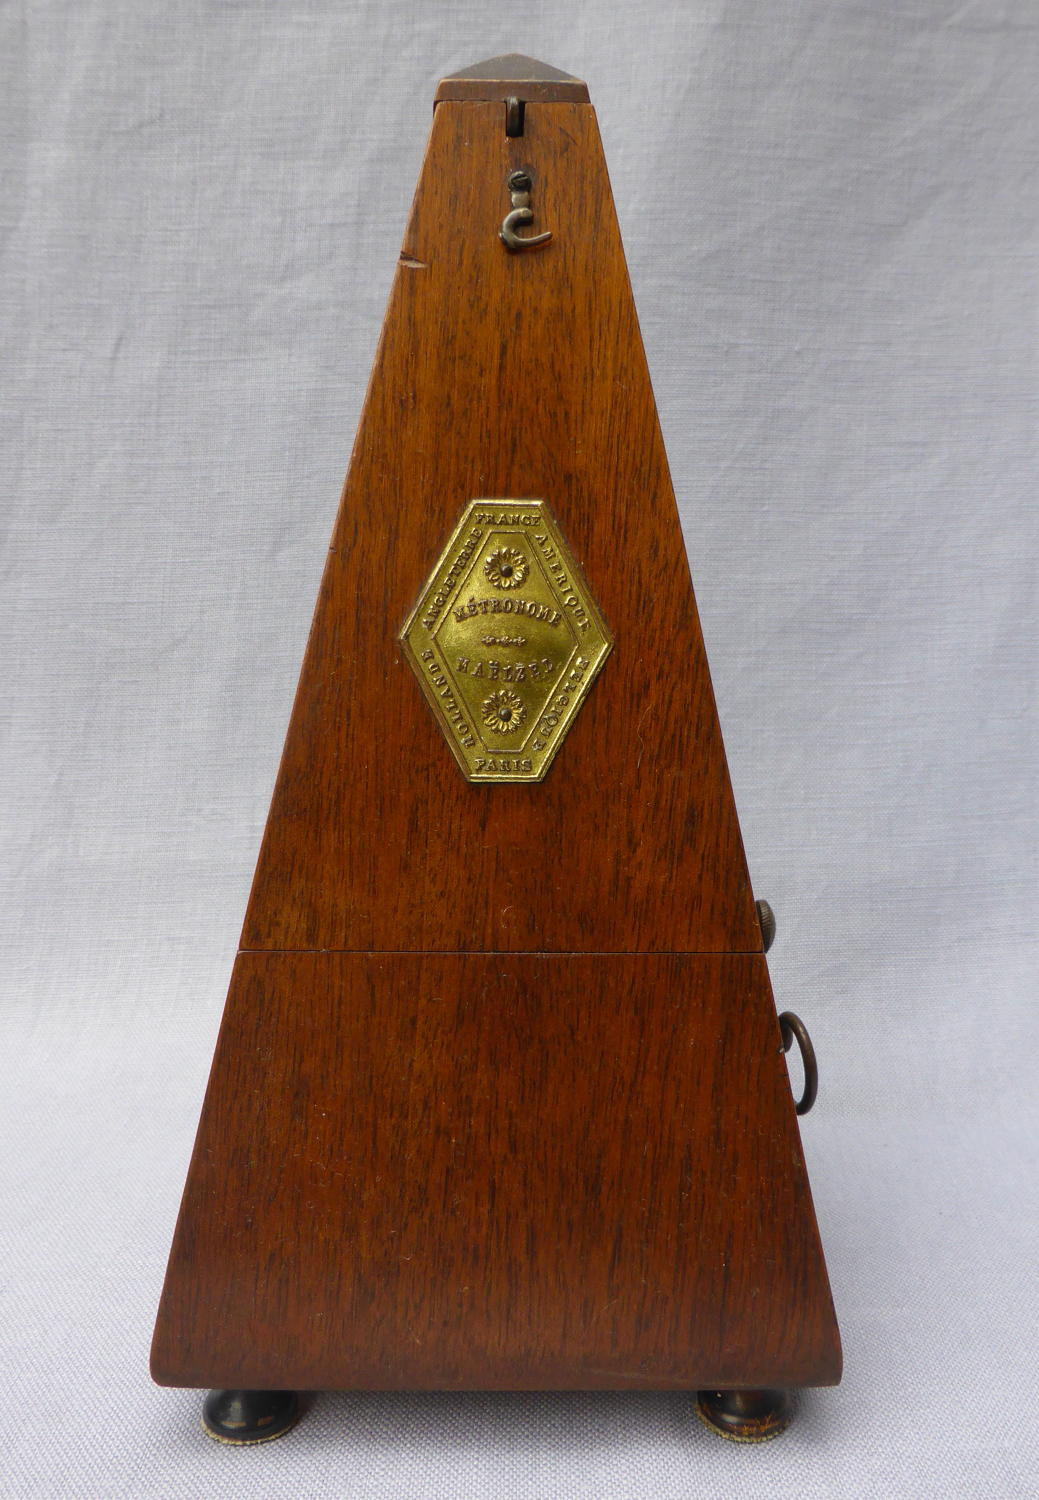 Early 20th century mahogany Maelzel metronome